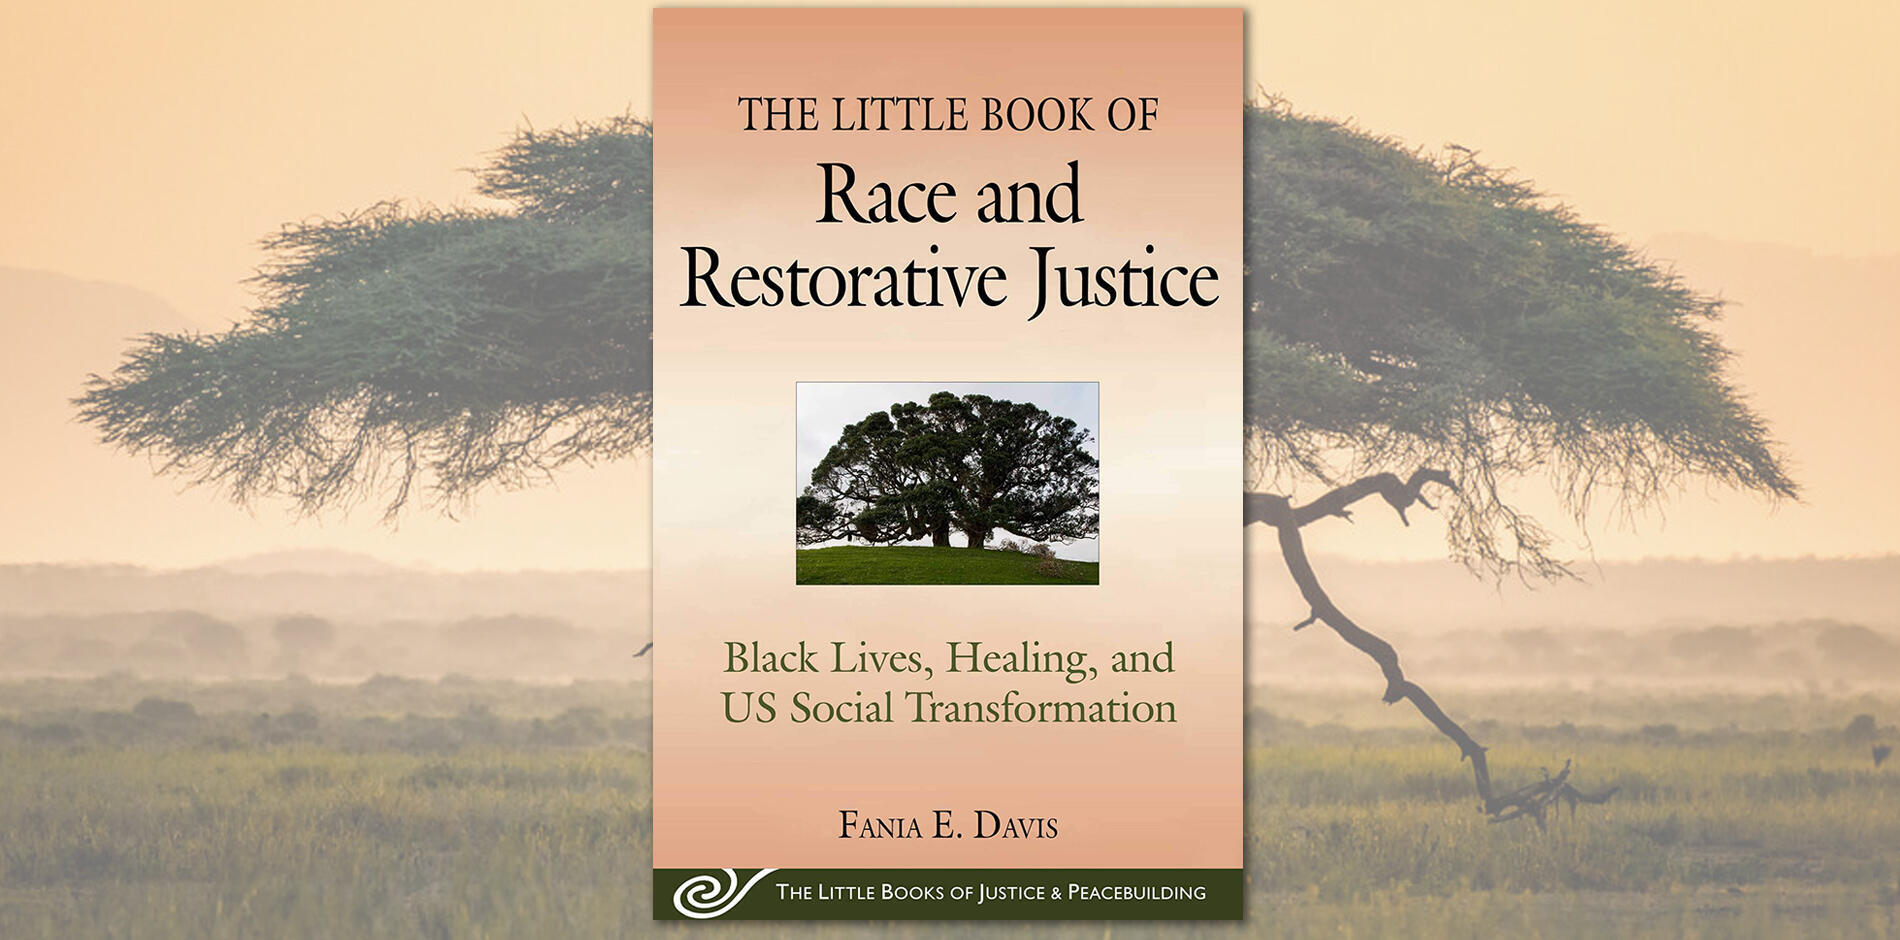 Little Book of Race and Restorative Justice